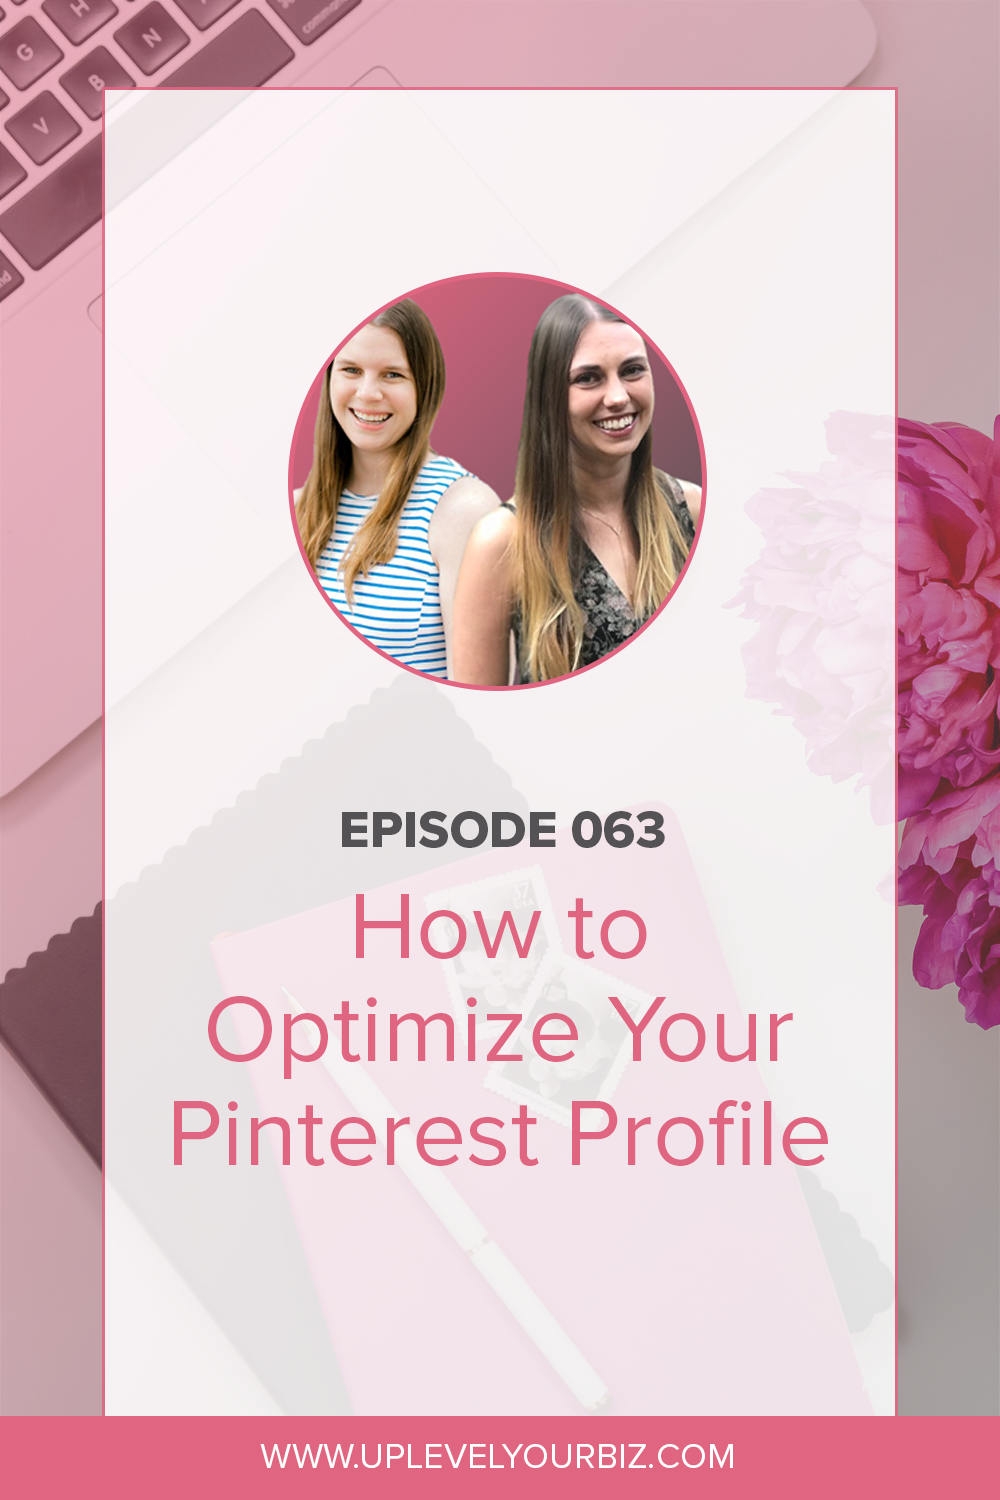 In today's episode, we are chatting about how to optimize your Pinterest profile for success.